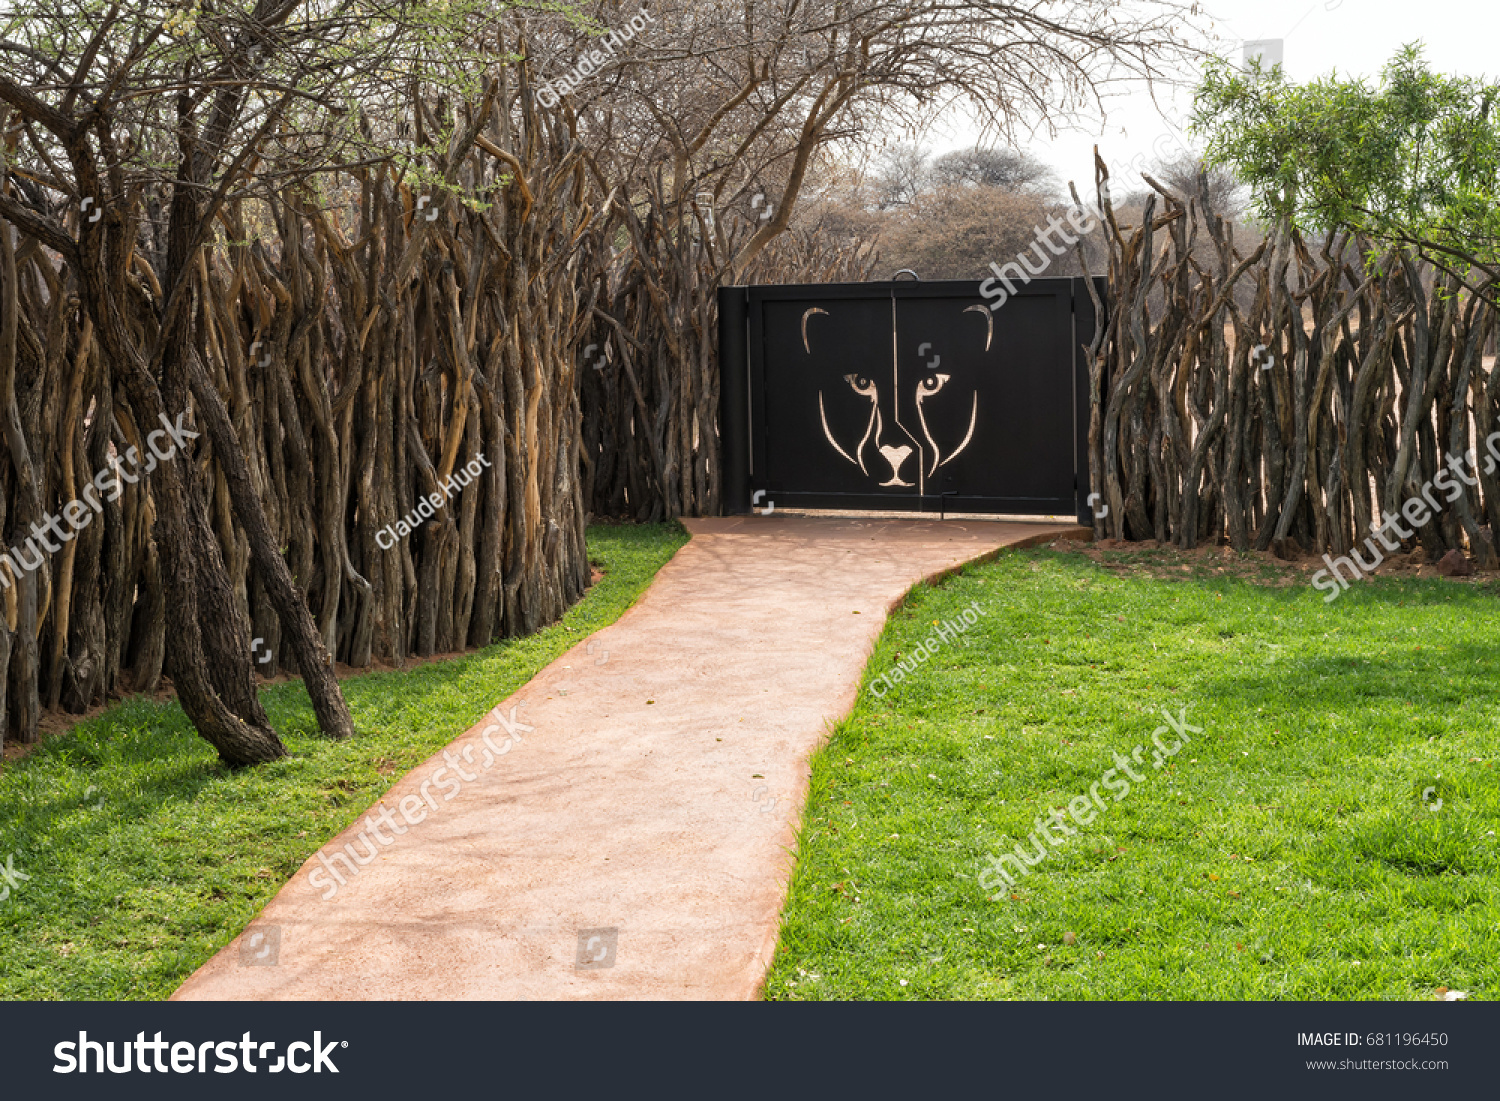 OKONJIMA, NAMIBIA - SEPTEMBER 11, 2015: Pedestrian entrance gate to the Okonjima Lodge and the AfriCat Foundation. Their mission is the conservation of large cats through rehabilitation and education.